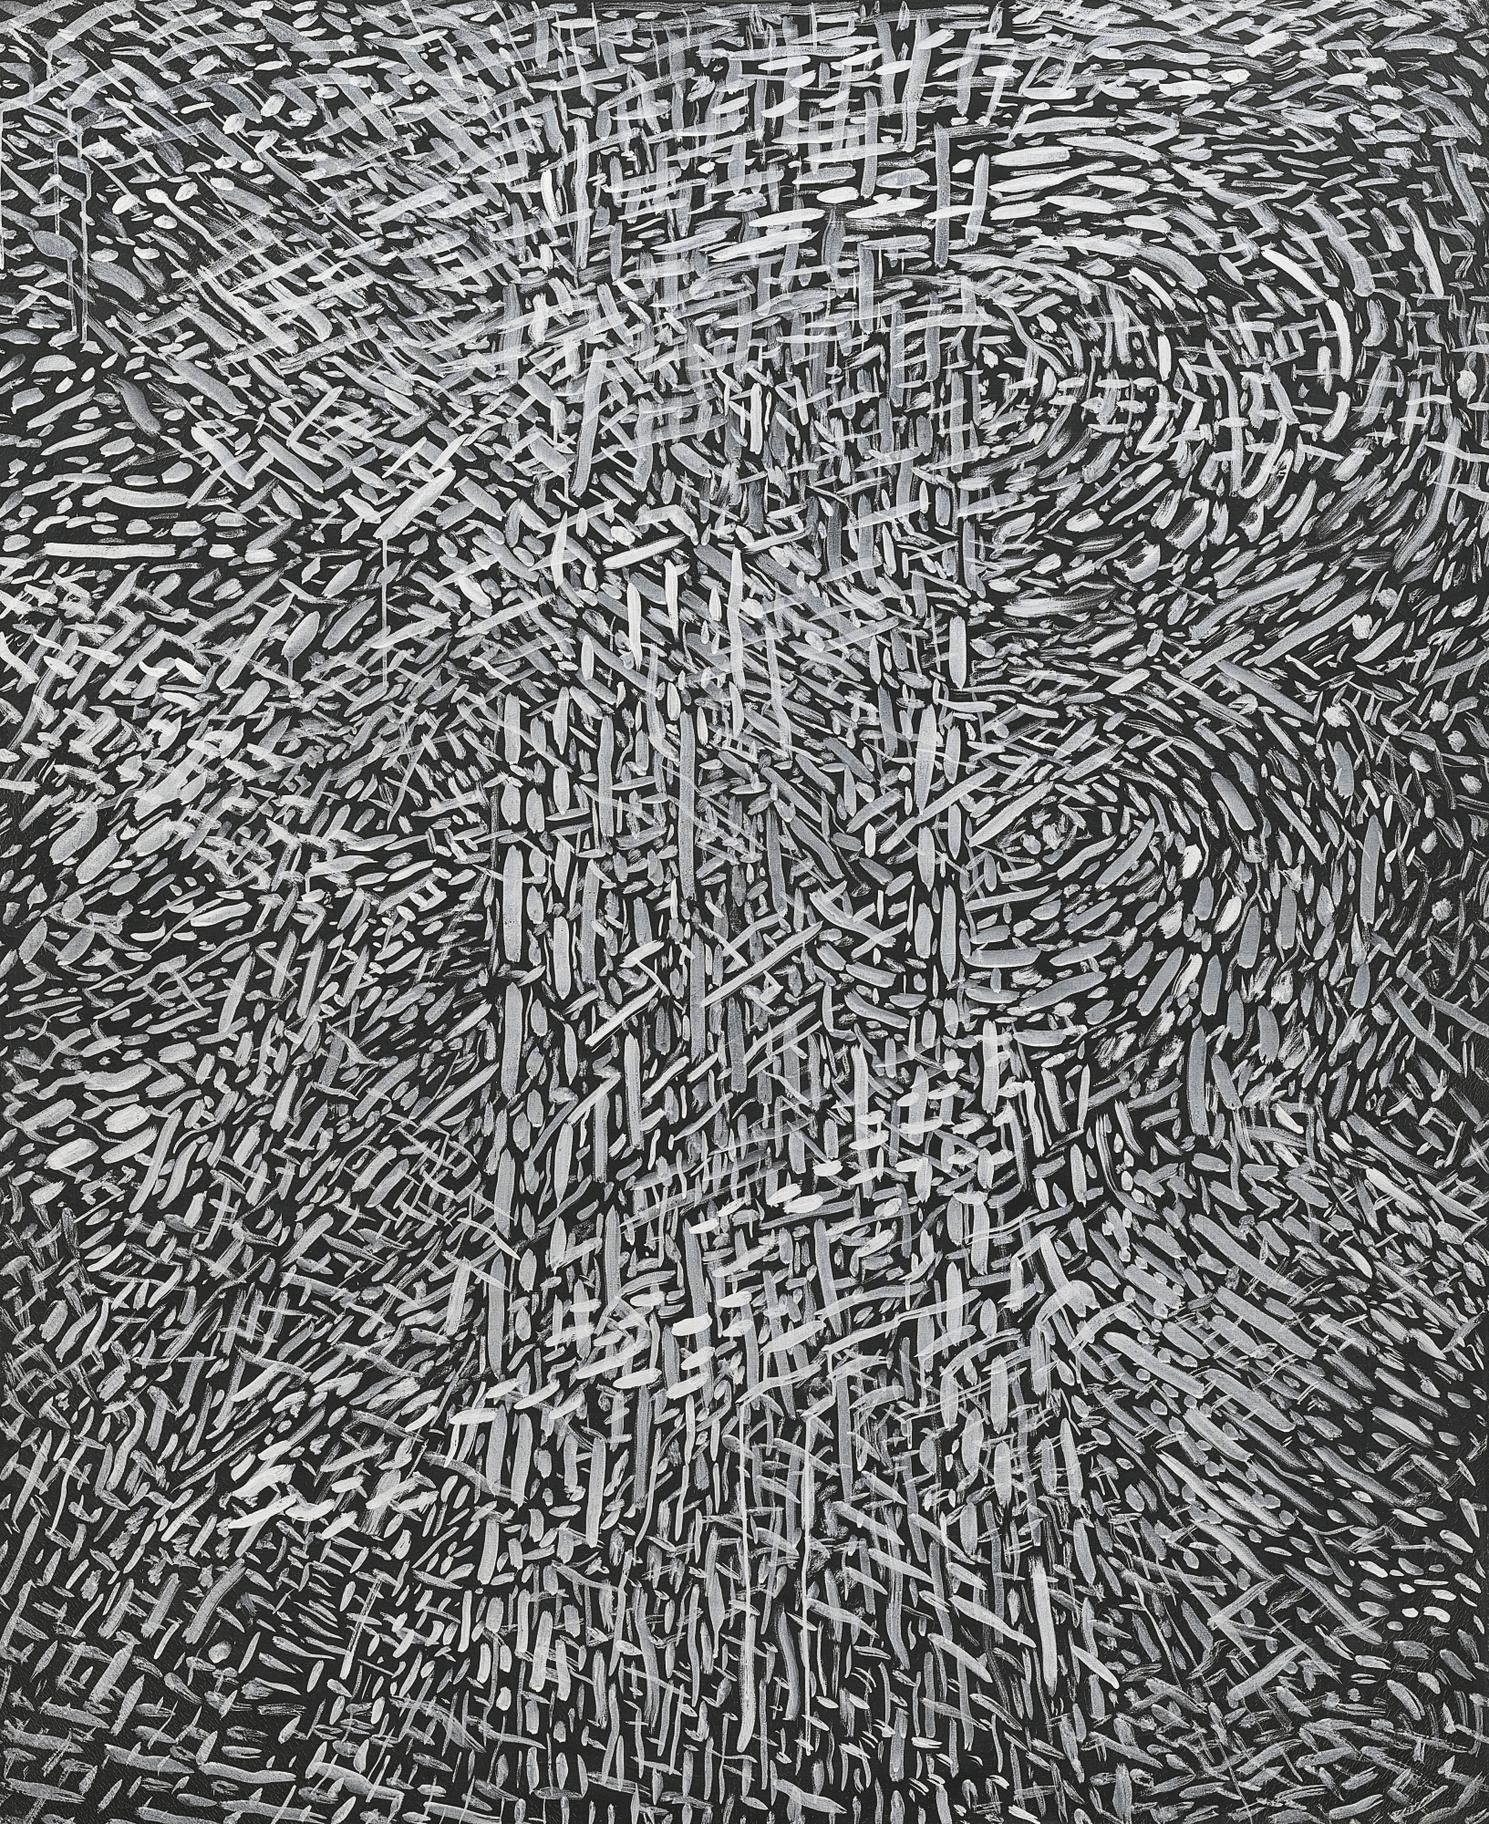 Yu Youhan-Abstract 1988-1-1988